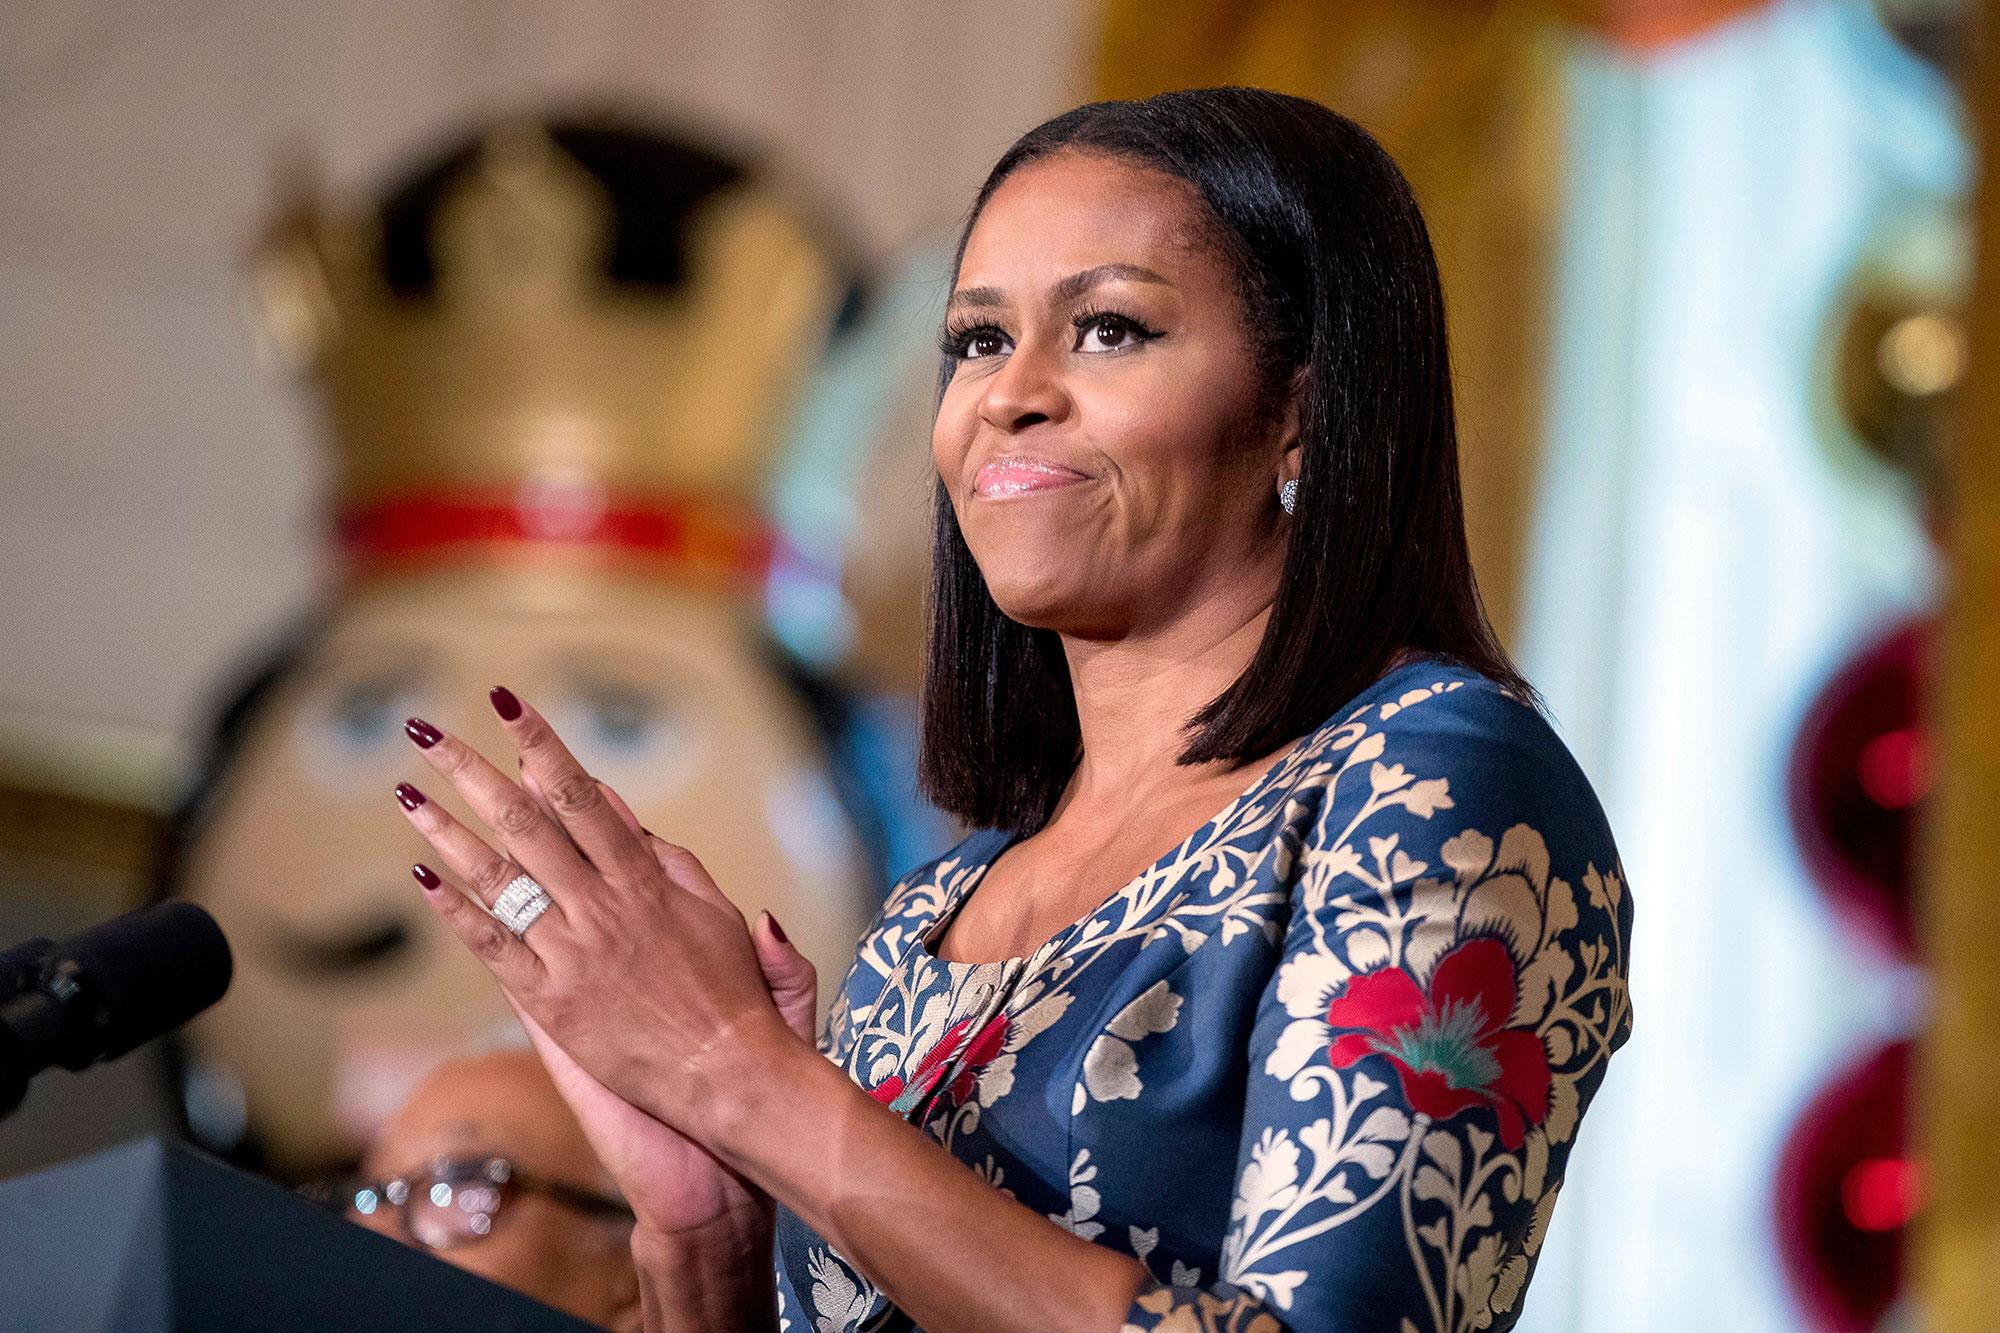 <p>First lady Michelle Obama, pauses while speaking to military families in the East Room of the White House during a preview of the 2016 holiday decor, Tuesday, Nov. 29, 2016, in Washington. (Photo: Andrew Harnik/AP) </p>